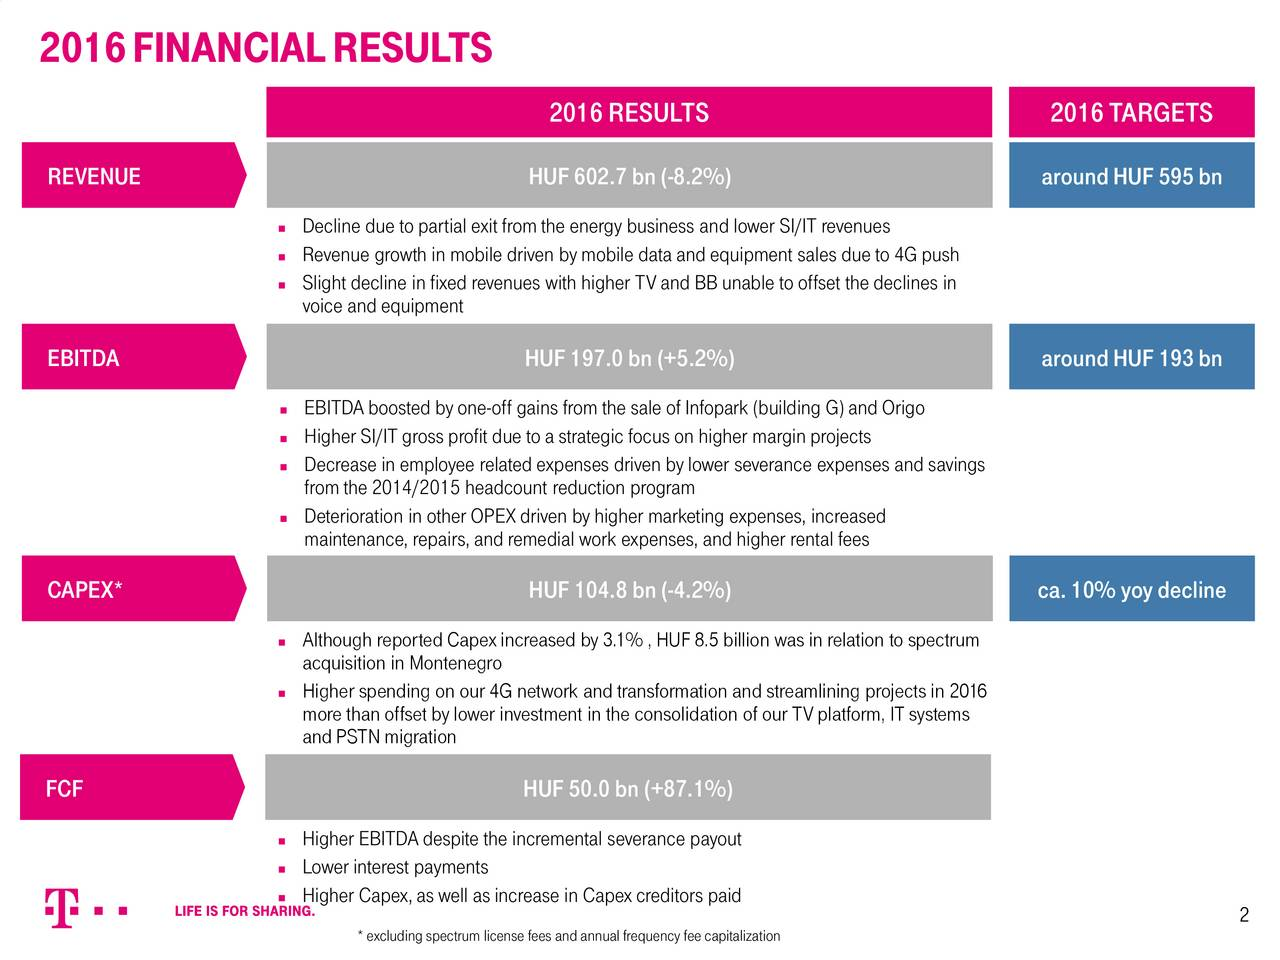 2016RESULTS 2016TARGETS REVENUE HUF602.7bn(-8.2%) aroundHUF595bn Decline due to partial exitfromthe energy business and lower SI/IT revenues Revenue growth in mobile driven bymobile dataand equipment sales due to 4G push Slight decline in fixed revenues with higher TVand BBunable tooffset the declines in voice andequipment EBITDA HUF197.0bn(+5.2%) aroundHUF193bn EBITDAboosted byone-off gains fromthe sale ofInfopark (building G) andOrigo Higher SI/IT gross profit due toa strategic focus on higher margin projects Decrease in employee related expenses driven bylower severance expenses and savings fromthe 2014/2015 headcount reduction program Deterioration in other OPEXdriven byhigher marketing expenses, increased maintenance, repairs, andremedial work expenses, andhigher rental fees CAPEX* HUF104.8bn(-4.2%) ca.10% yoydecline Although reported Capexincreased by3.1% ,HUF8.5 billion was in relation to spectrum acquisition in Montenegro Higher spending on our 4G network andtransformation and streamlining projects in 2016 morethan offset bylower investment in the consolidation ofour TVplatform, ITsystems andPSTN migration FCF HUF50.0bn(+87.1%) Higher EBITDAdespite the incremental severance payout Lower interest payments Higher Capex,aswell asincrease in Capexcreditors paid 2 *excluding spectrum license fees andannualfrequency fee capitalization